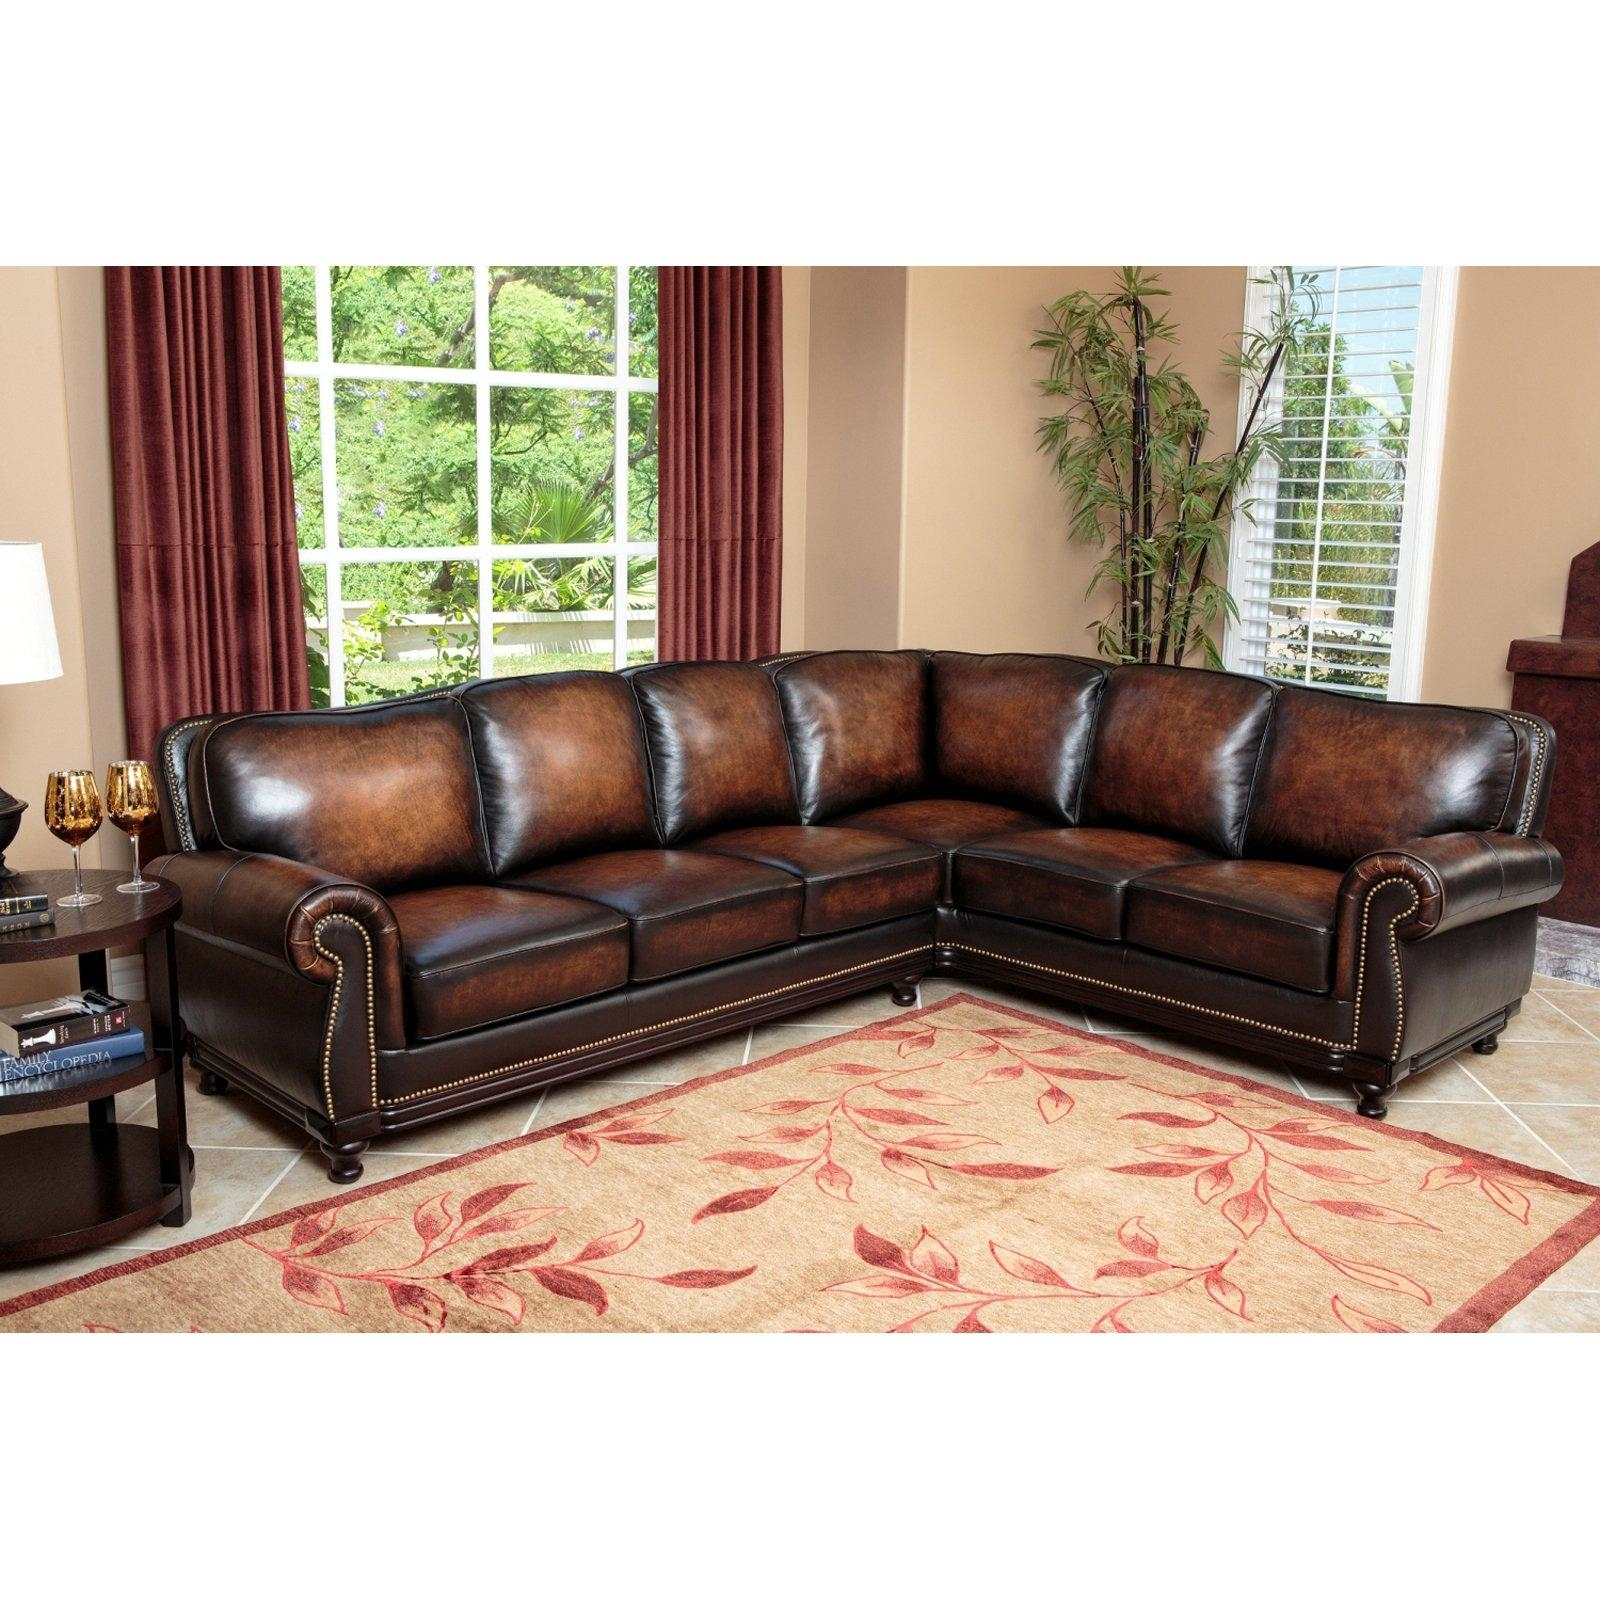 Abbyson Tekana Premium Italian Leather Sectional Sofa – Dark Brown With Abbyson Living Sectional Sofas (Image 12 of 20)